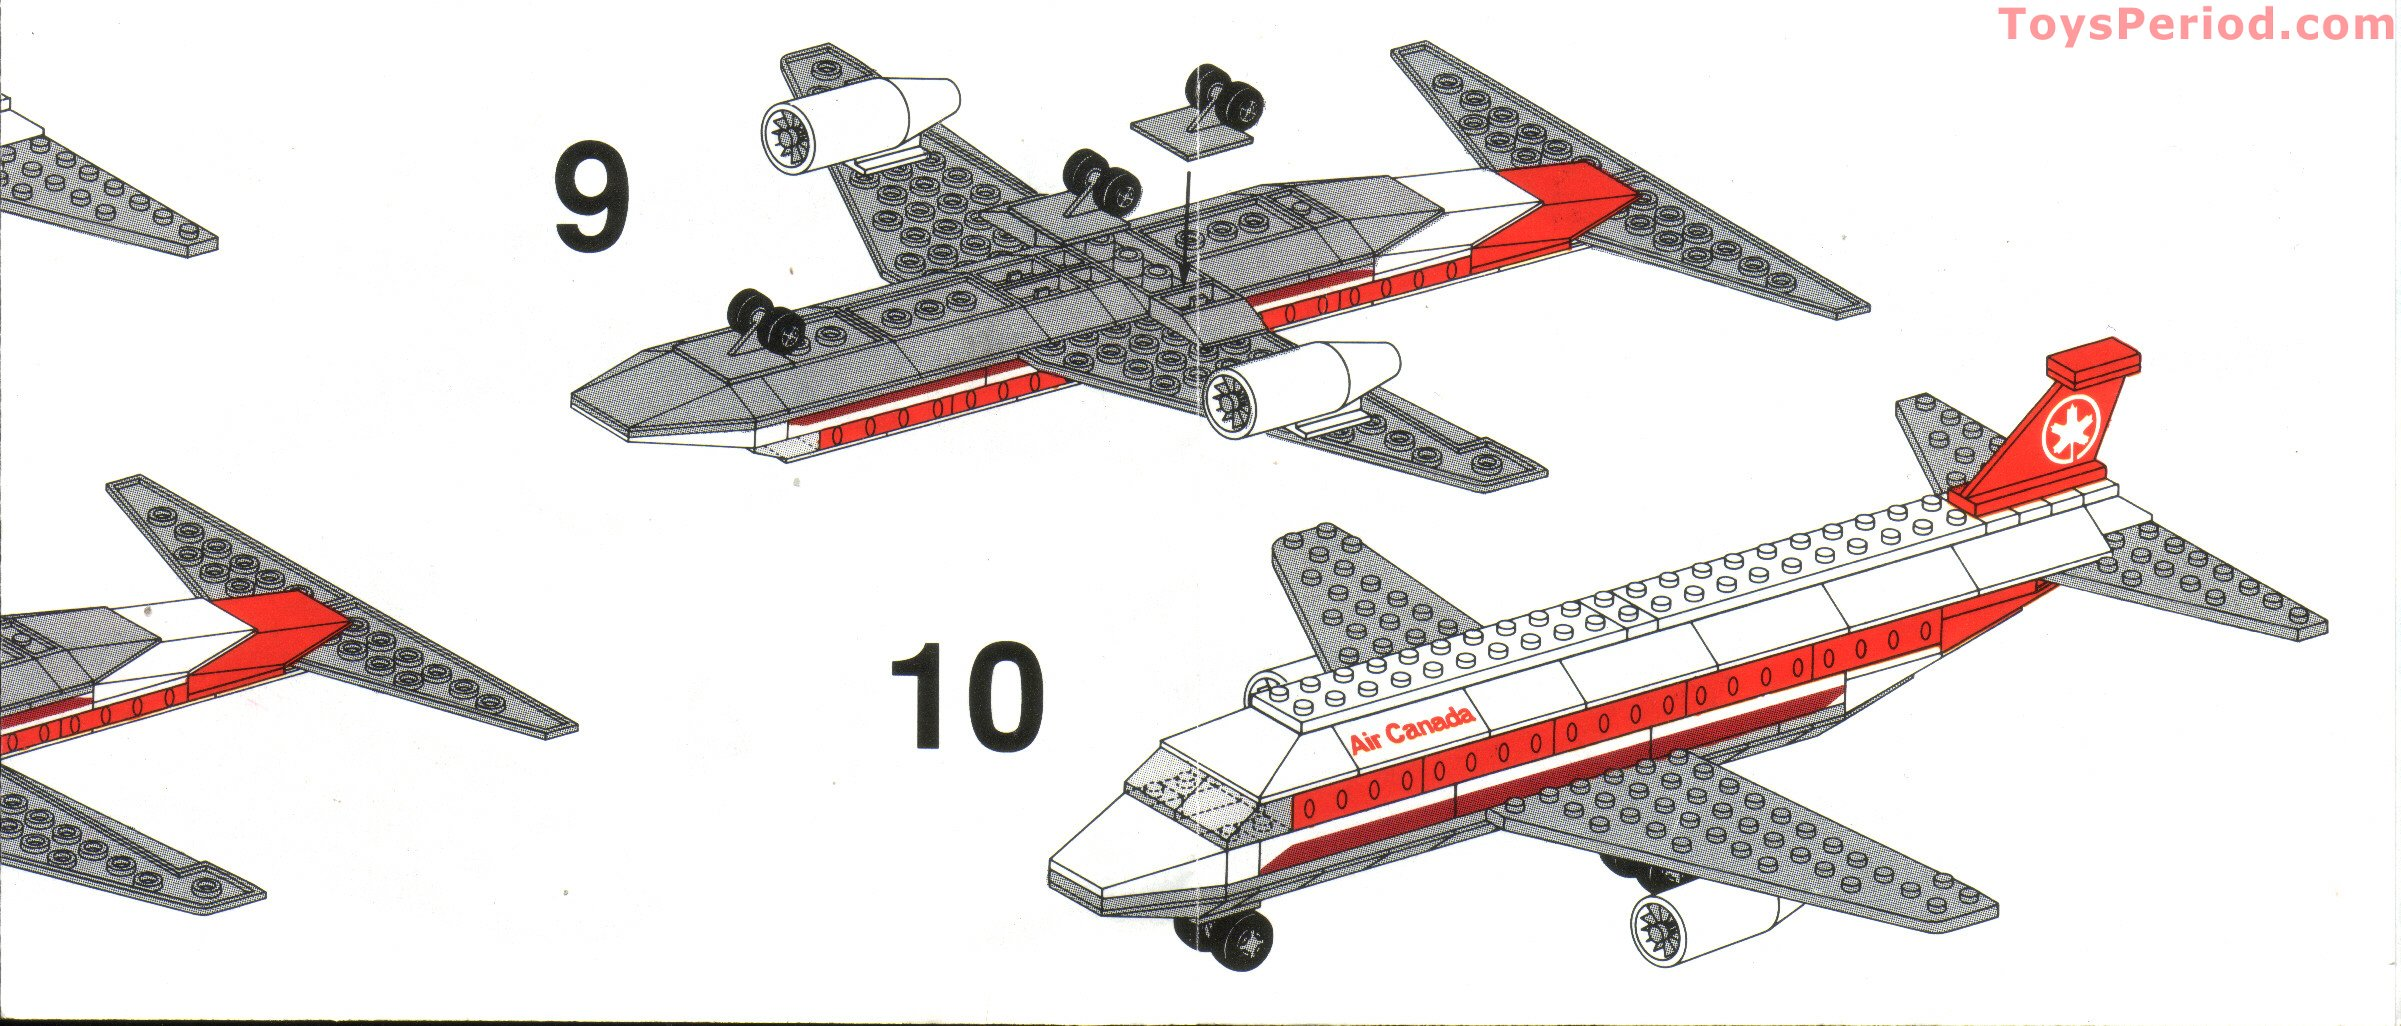 Heartlake private jet 41100 lego friends building instructions.